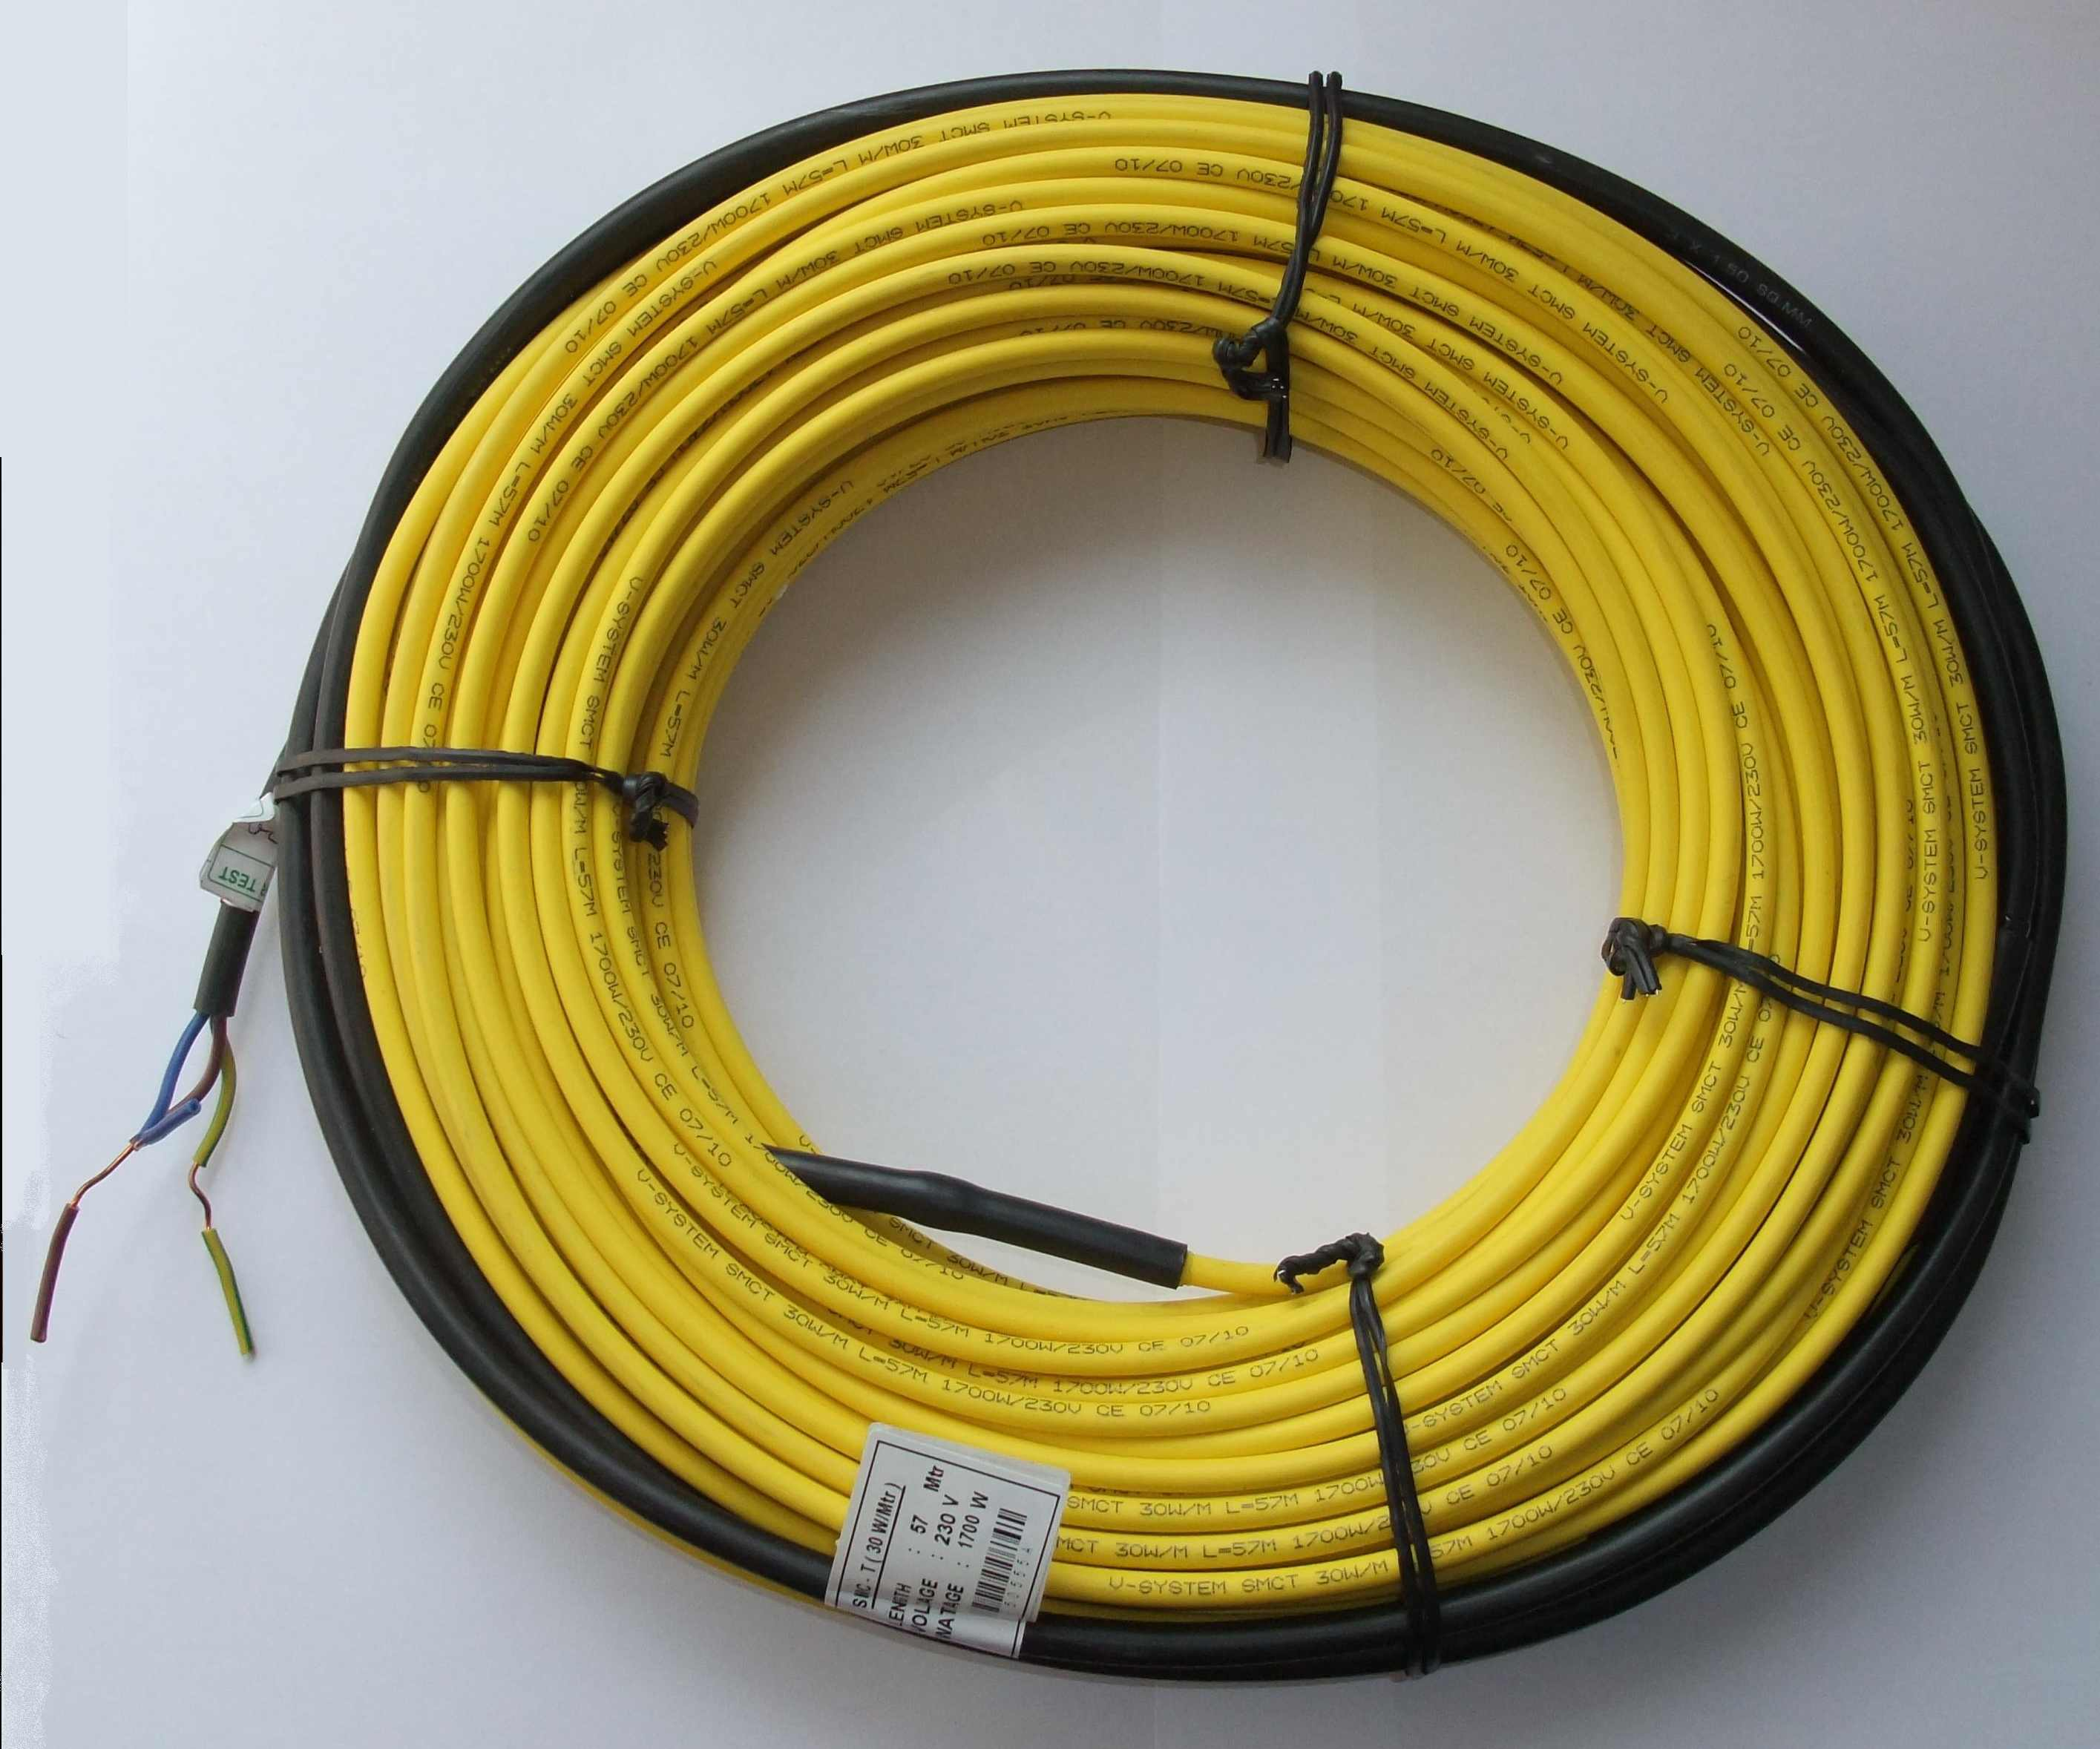 Topný kabel TO-1T-98-2800